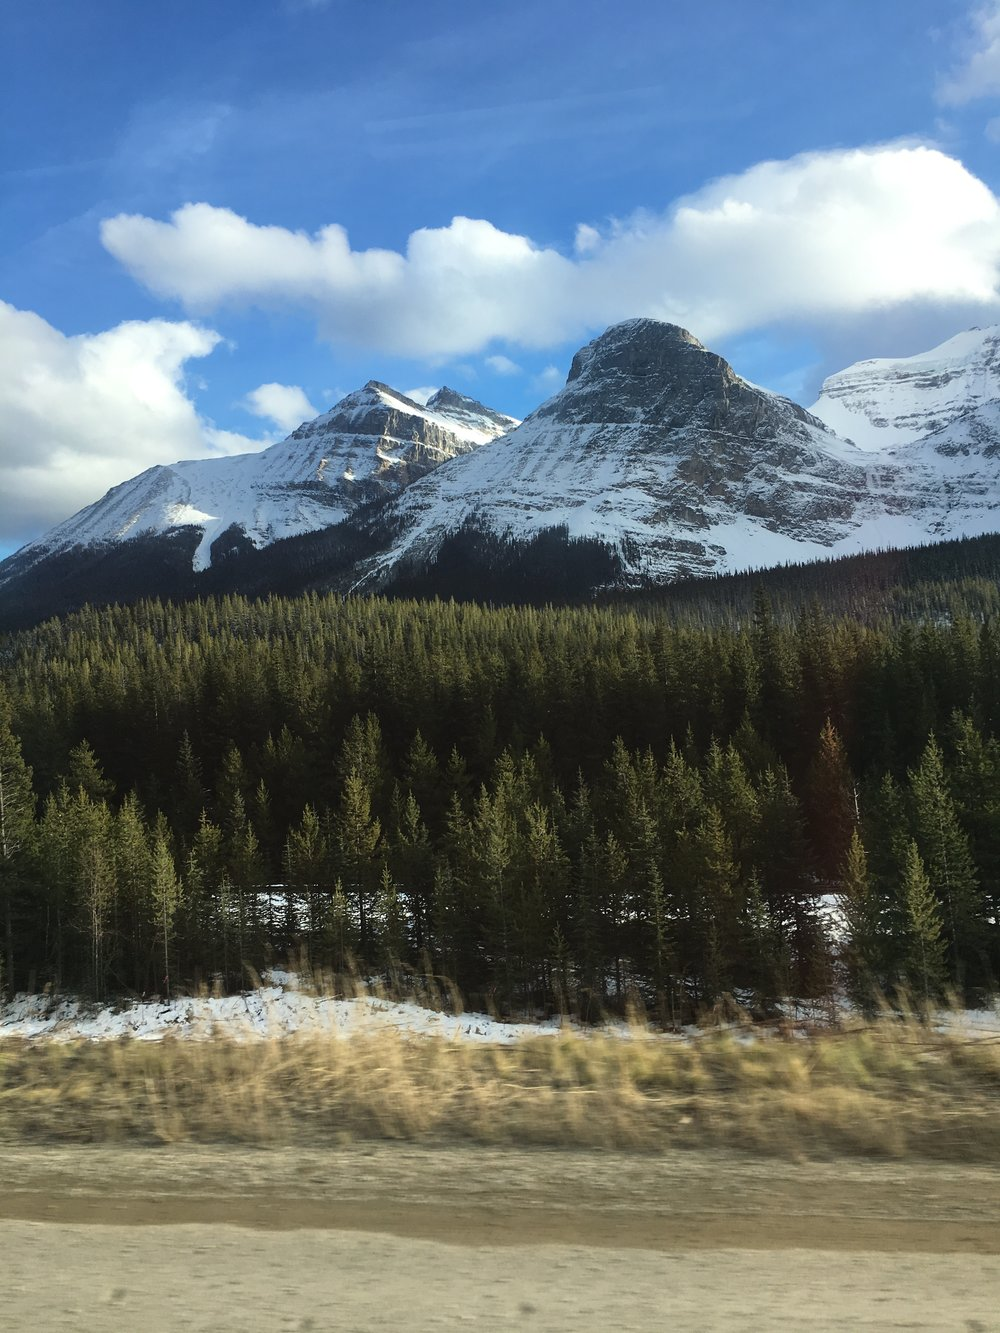 A view of the Rockies on our way back!